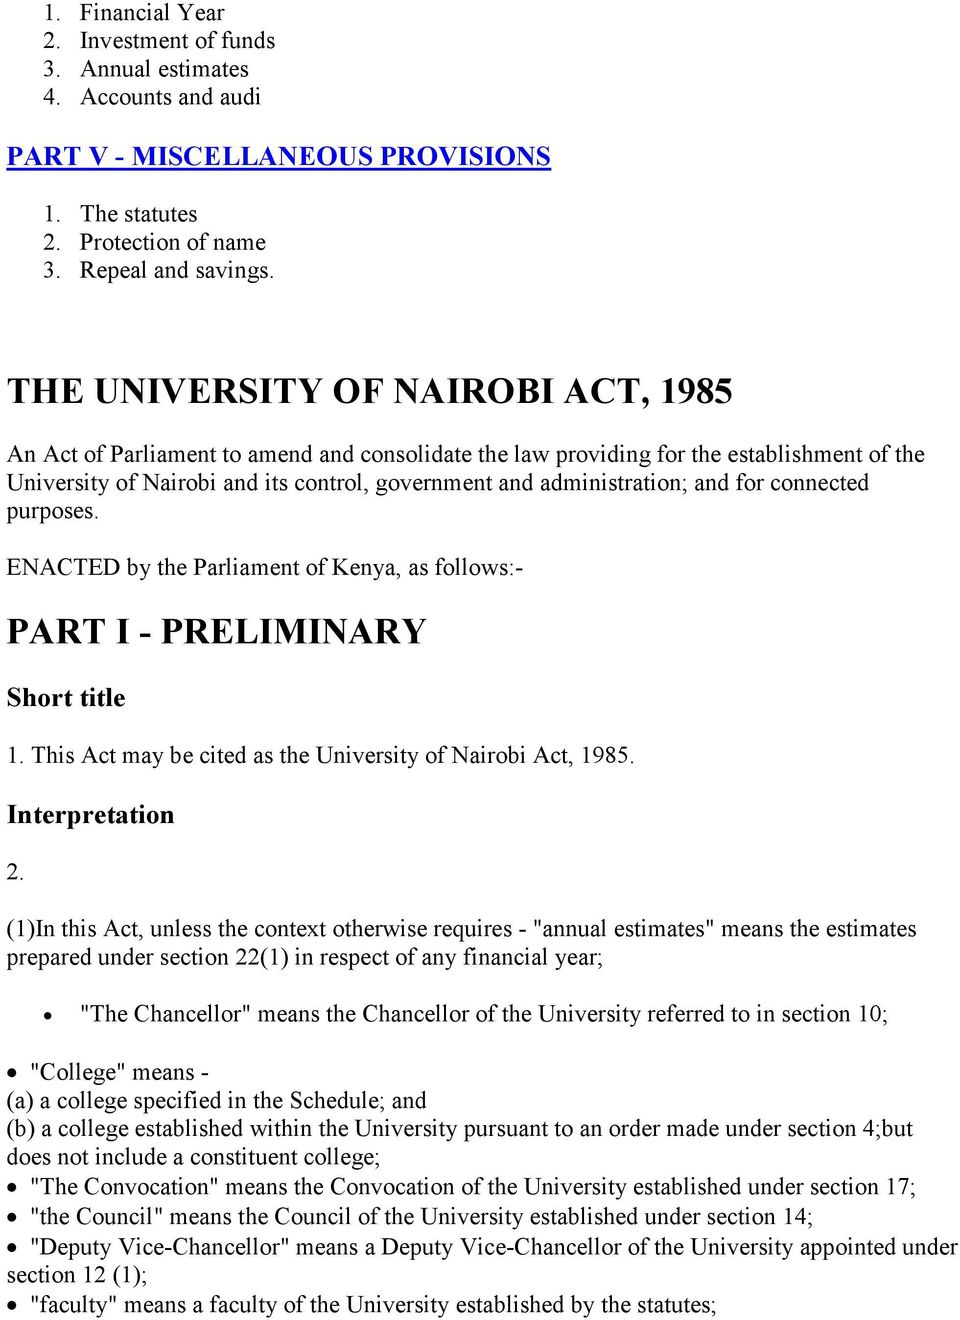 and for connected purposes. ENACTED by the Parliament of Kenya, as follows:- PART I - PRELIMINARY Short title 1. This Act may be cited as the University of Nairobi Act, 1985. Interpretation 2.